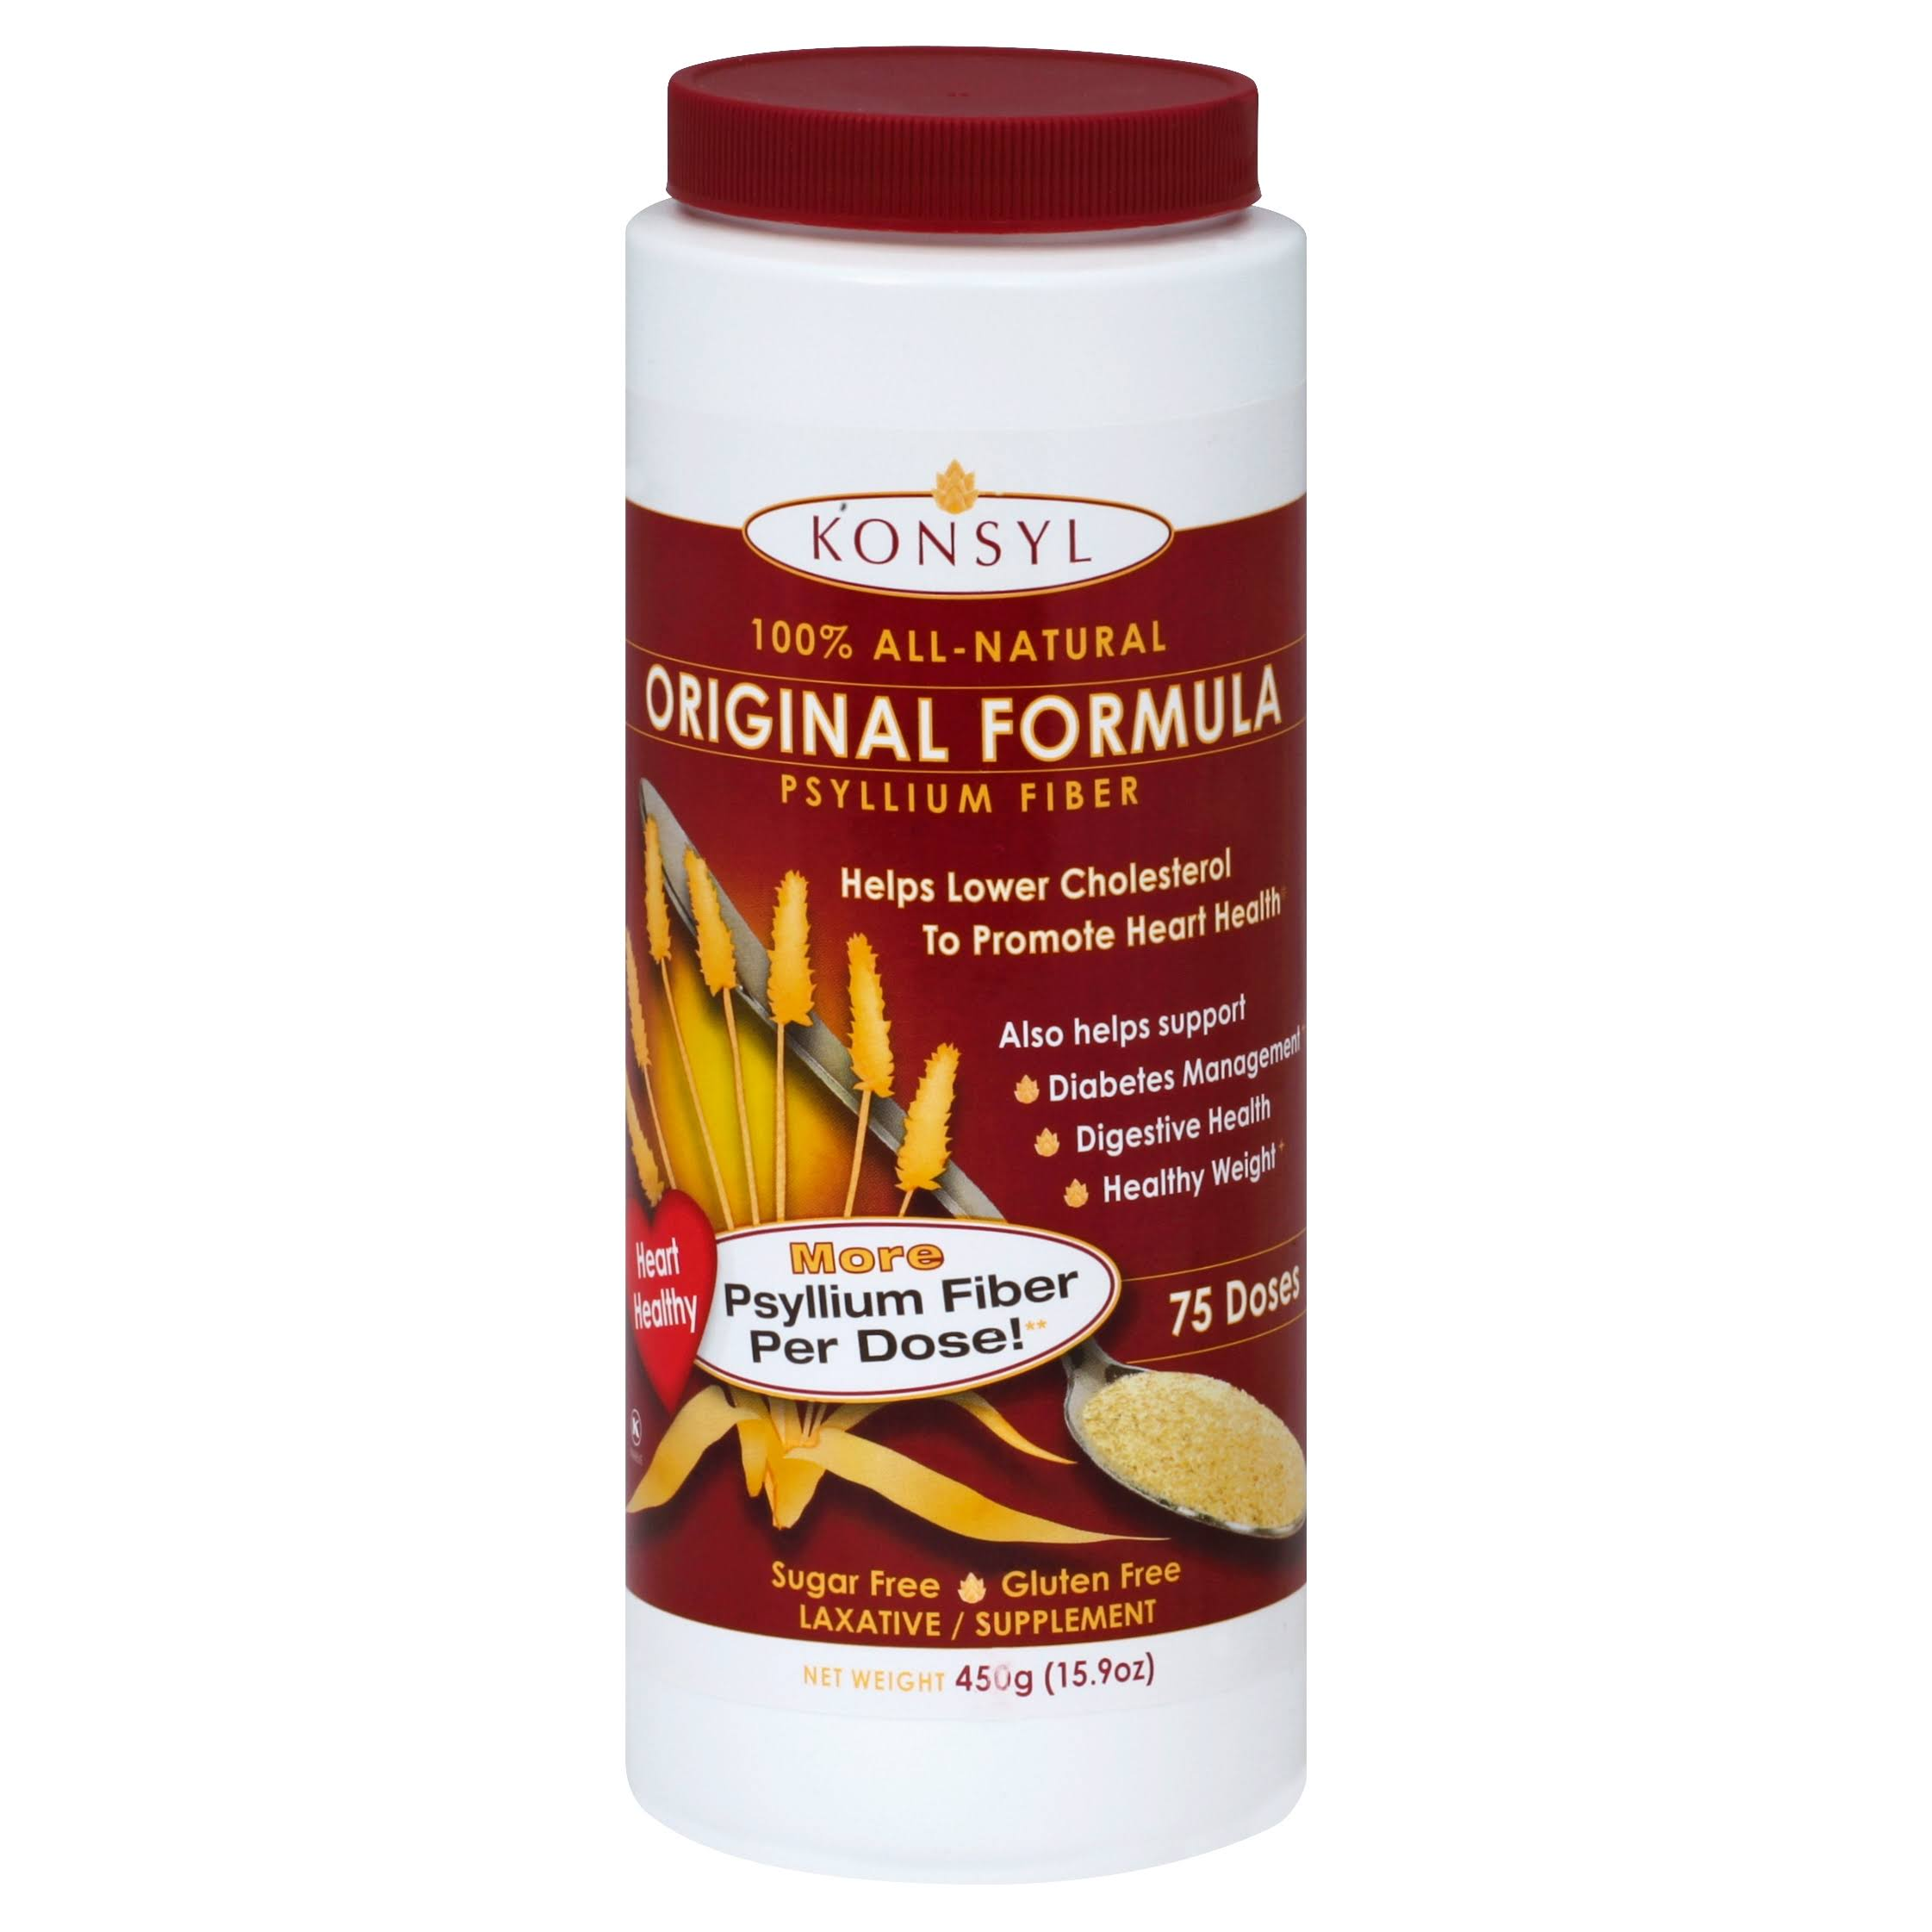 Konsyl Original Formula 100 Percent Psyllium Fiber Supplement - 450g